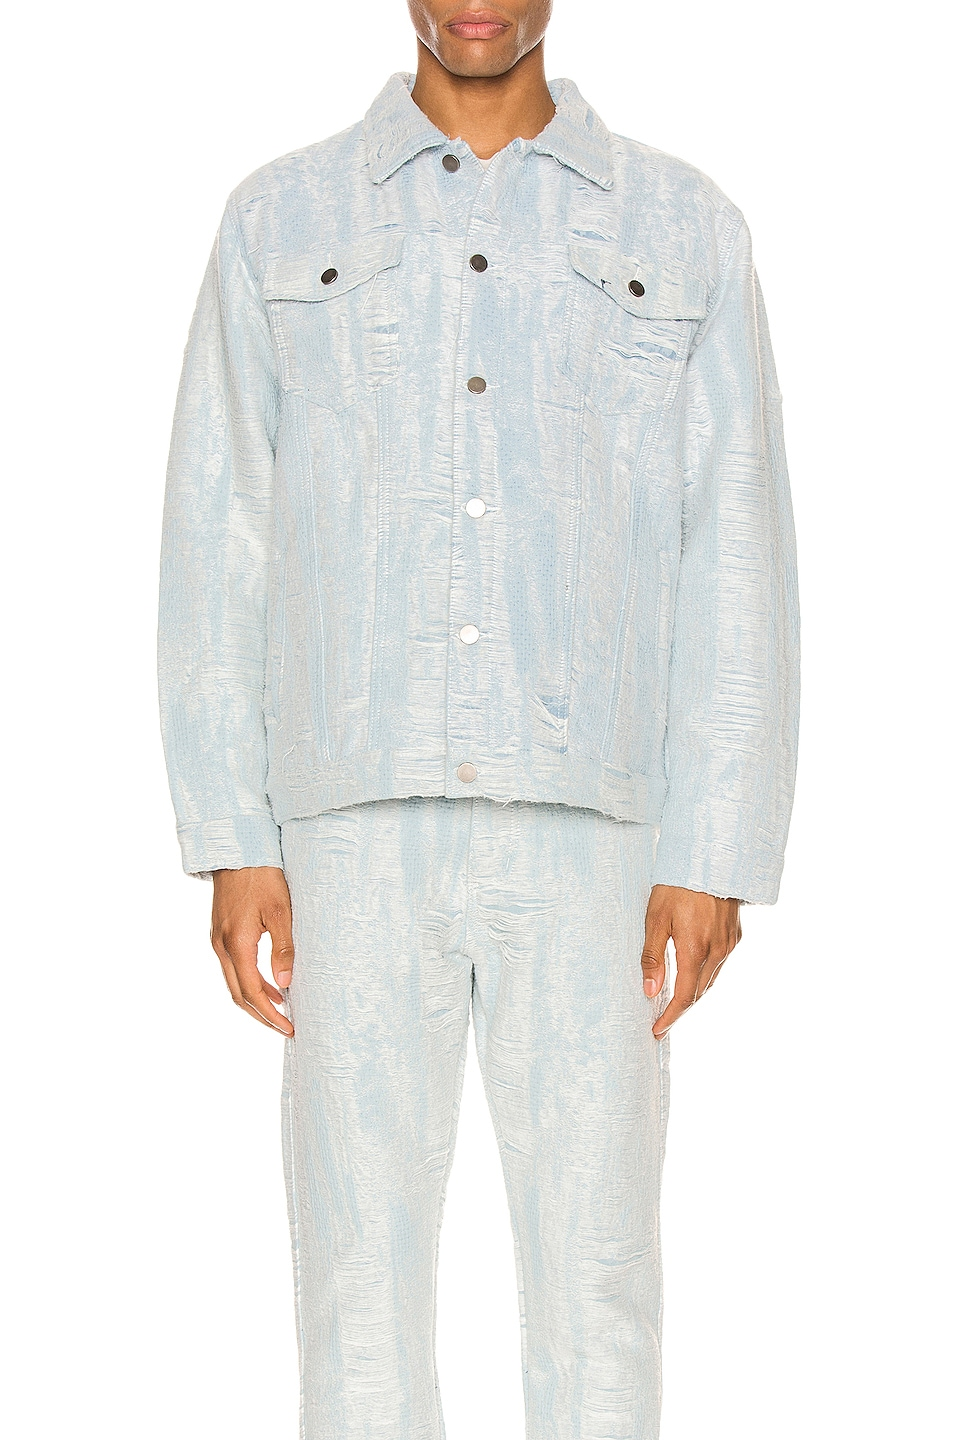 Image 2 of Who Decides War by Ev Bravado Distressed Storm Denim Jacket in Denim